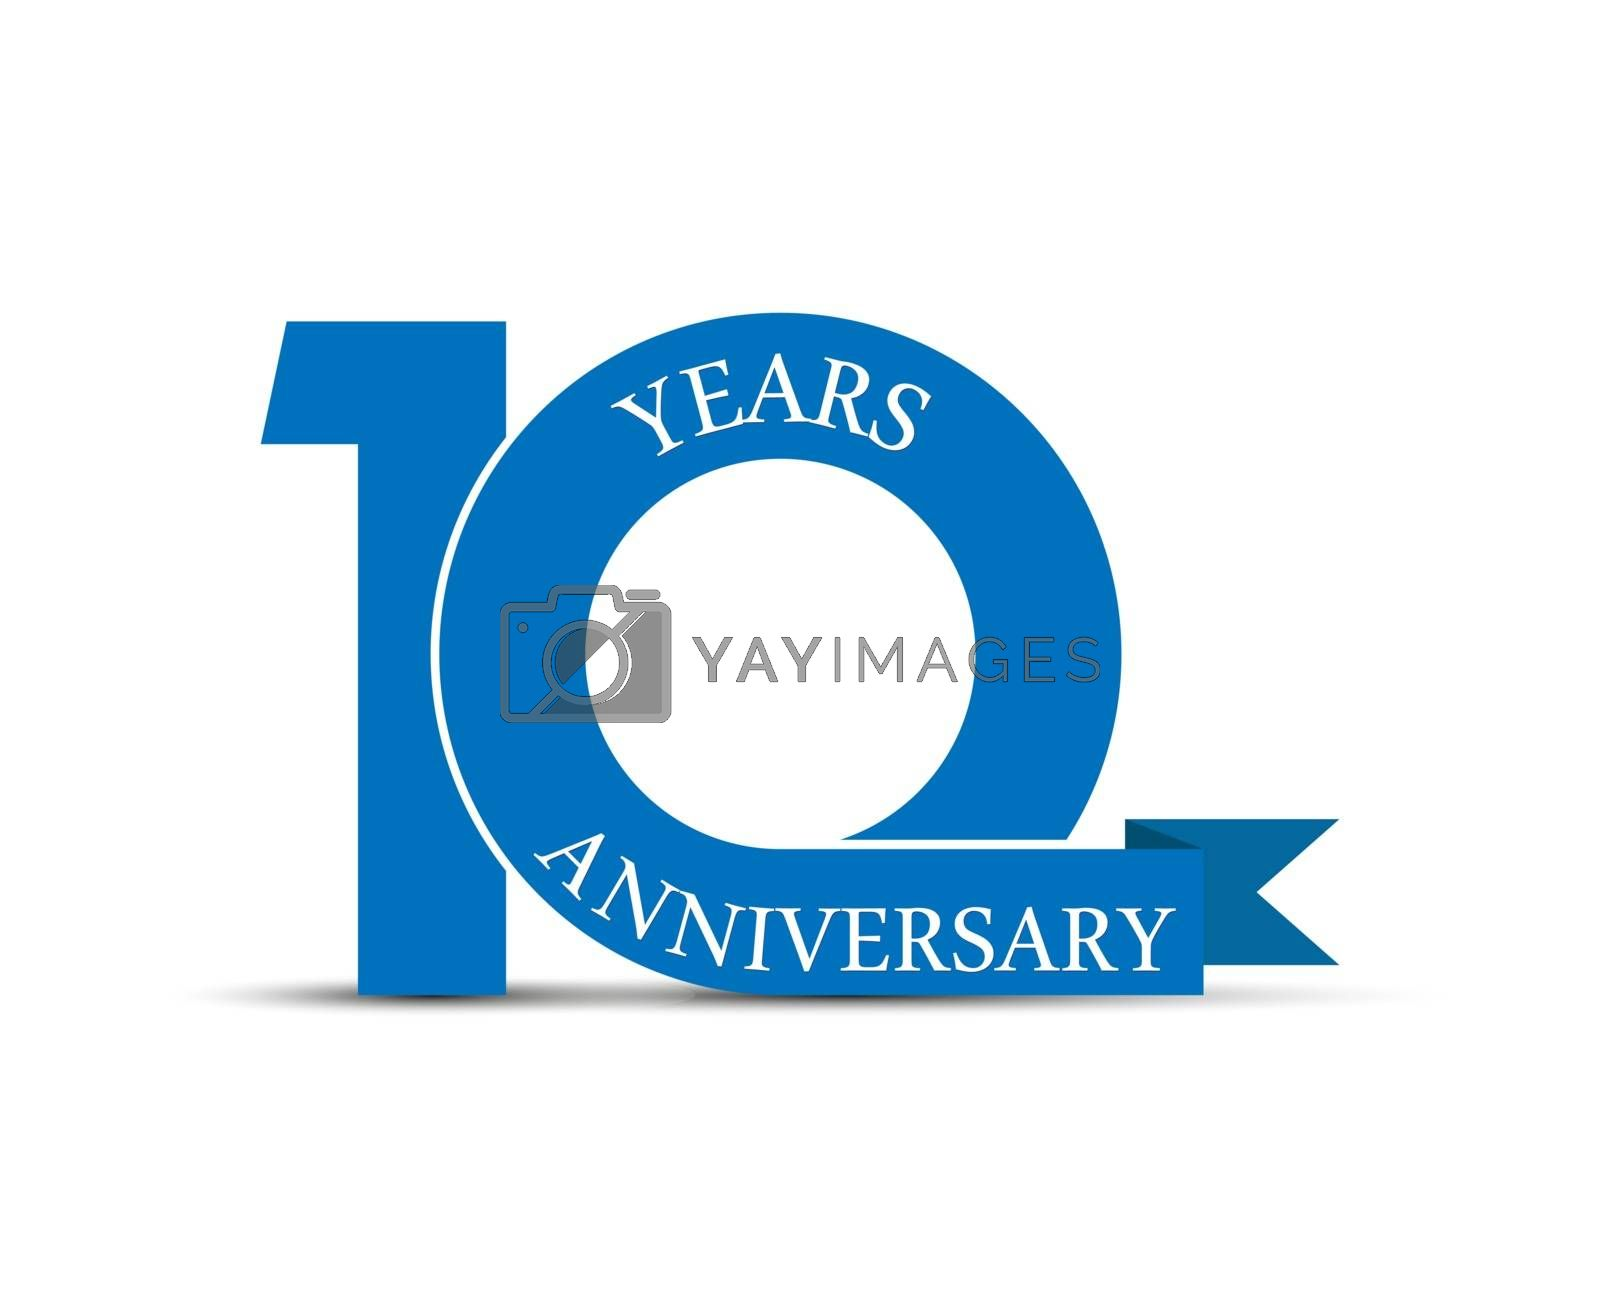 10 years anniversary, simple design, logo for decoration